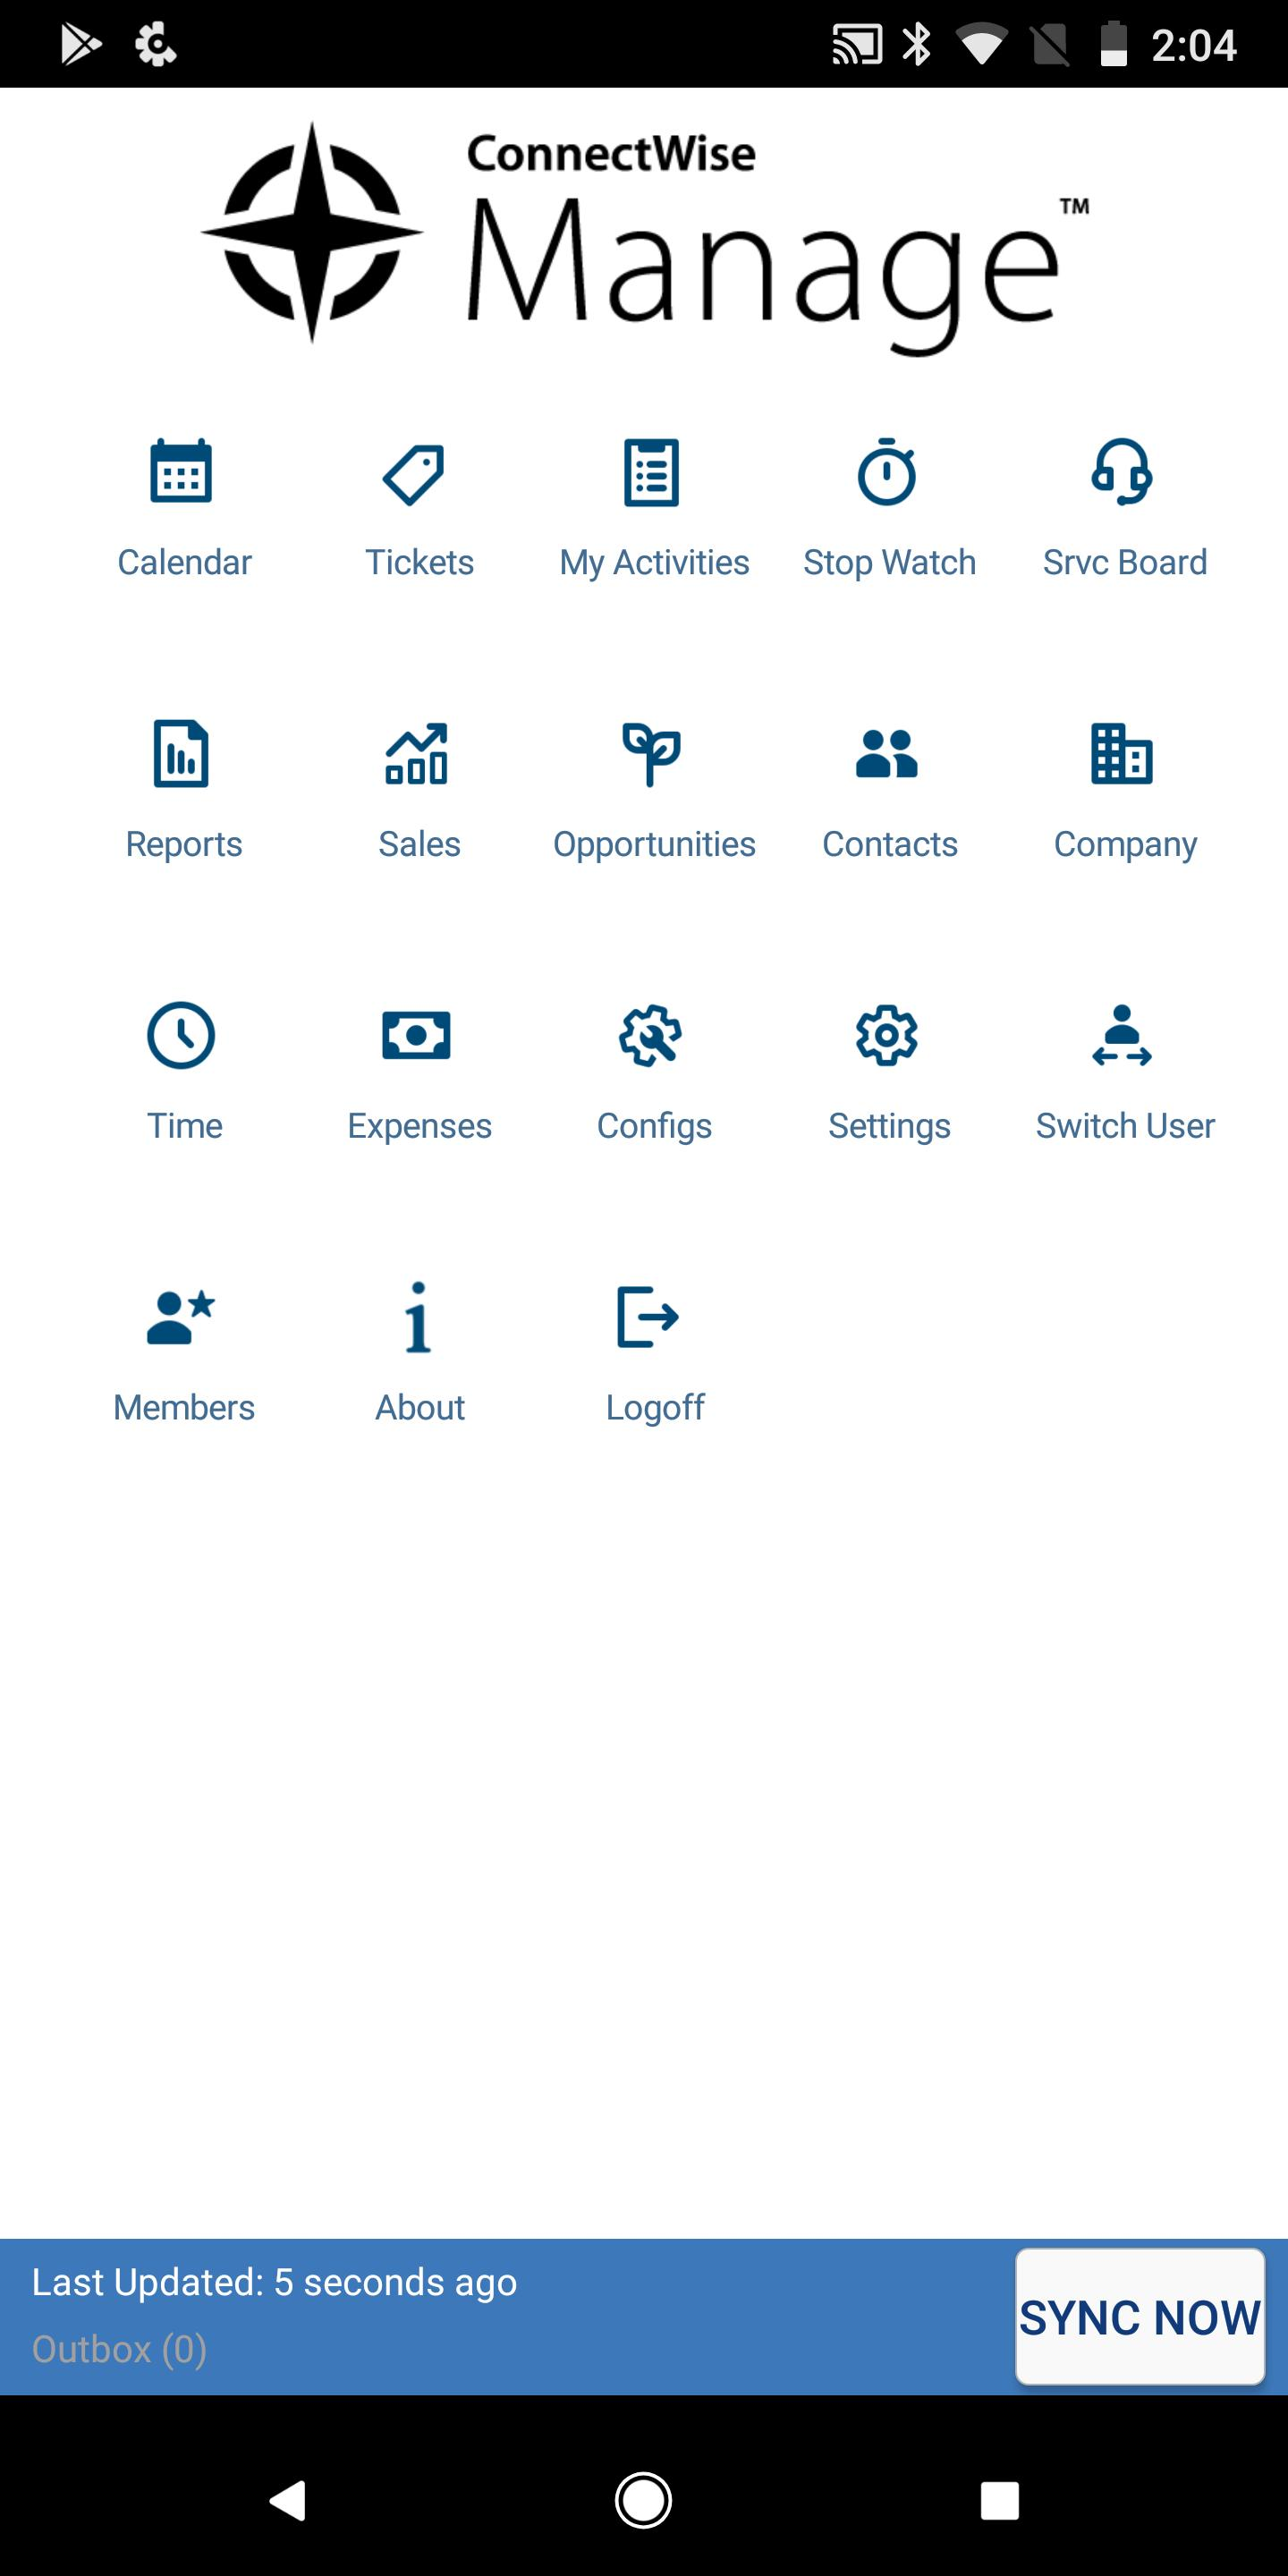 Legacy ConnectWise Manage for Android - APK Download